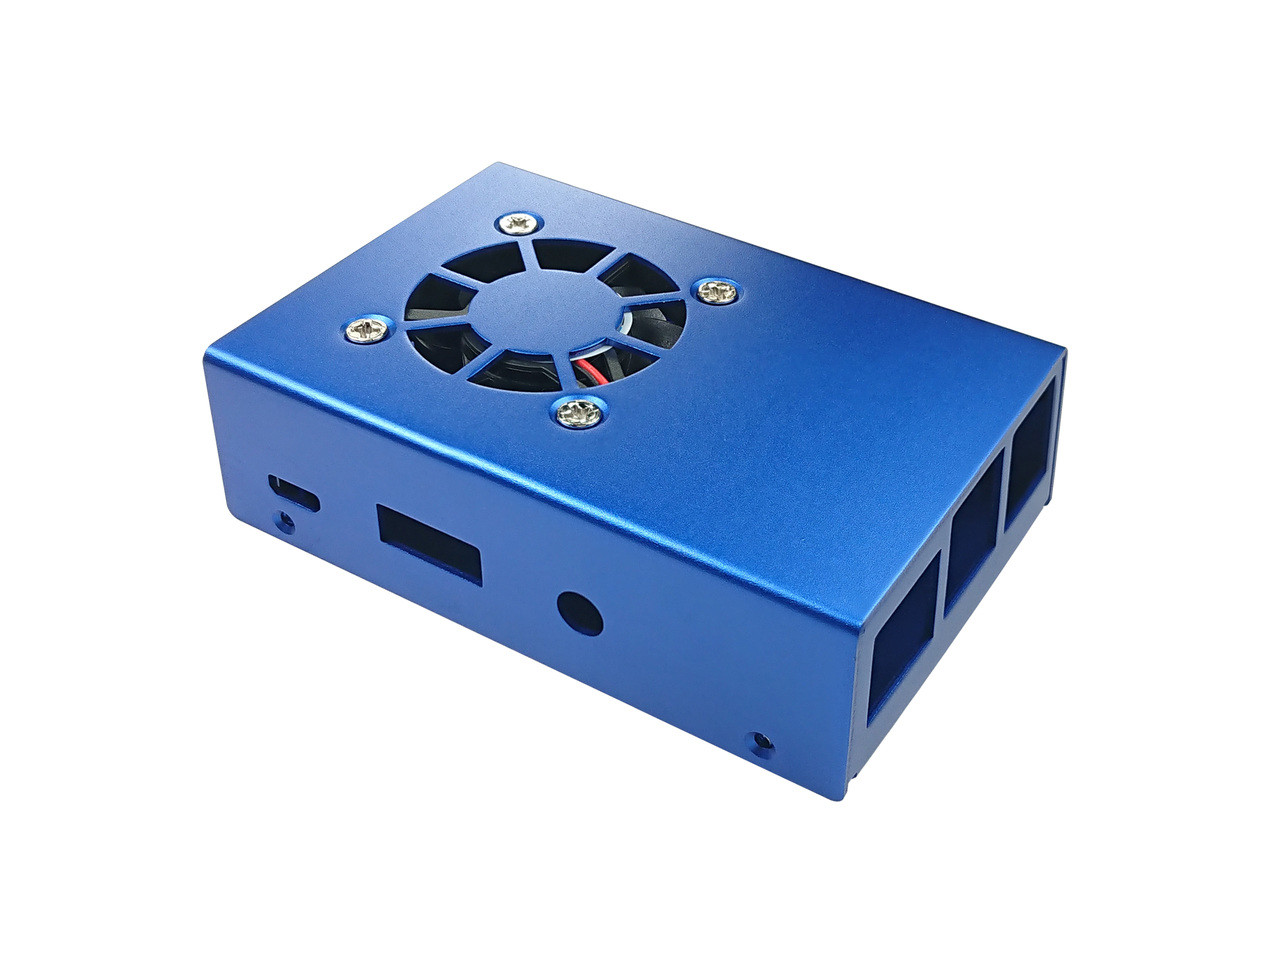 Aluminum Raspberry Pi 3 Model B/B+ Case with Fan, Blue